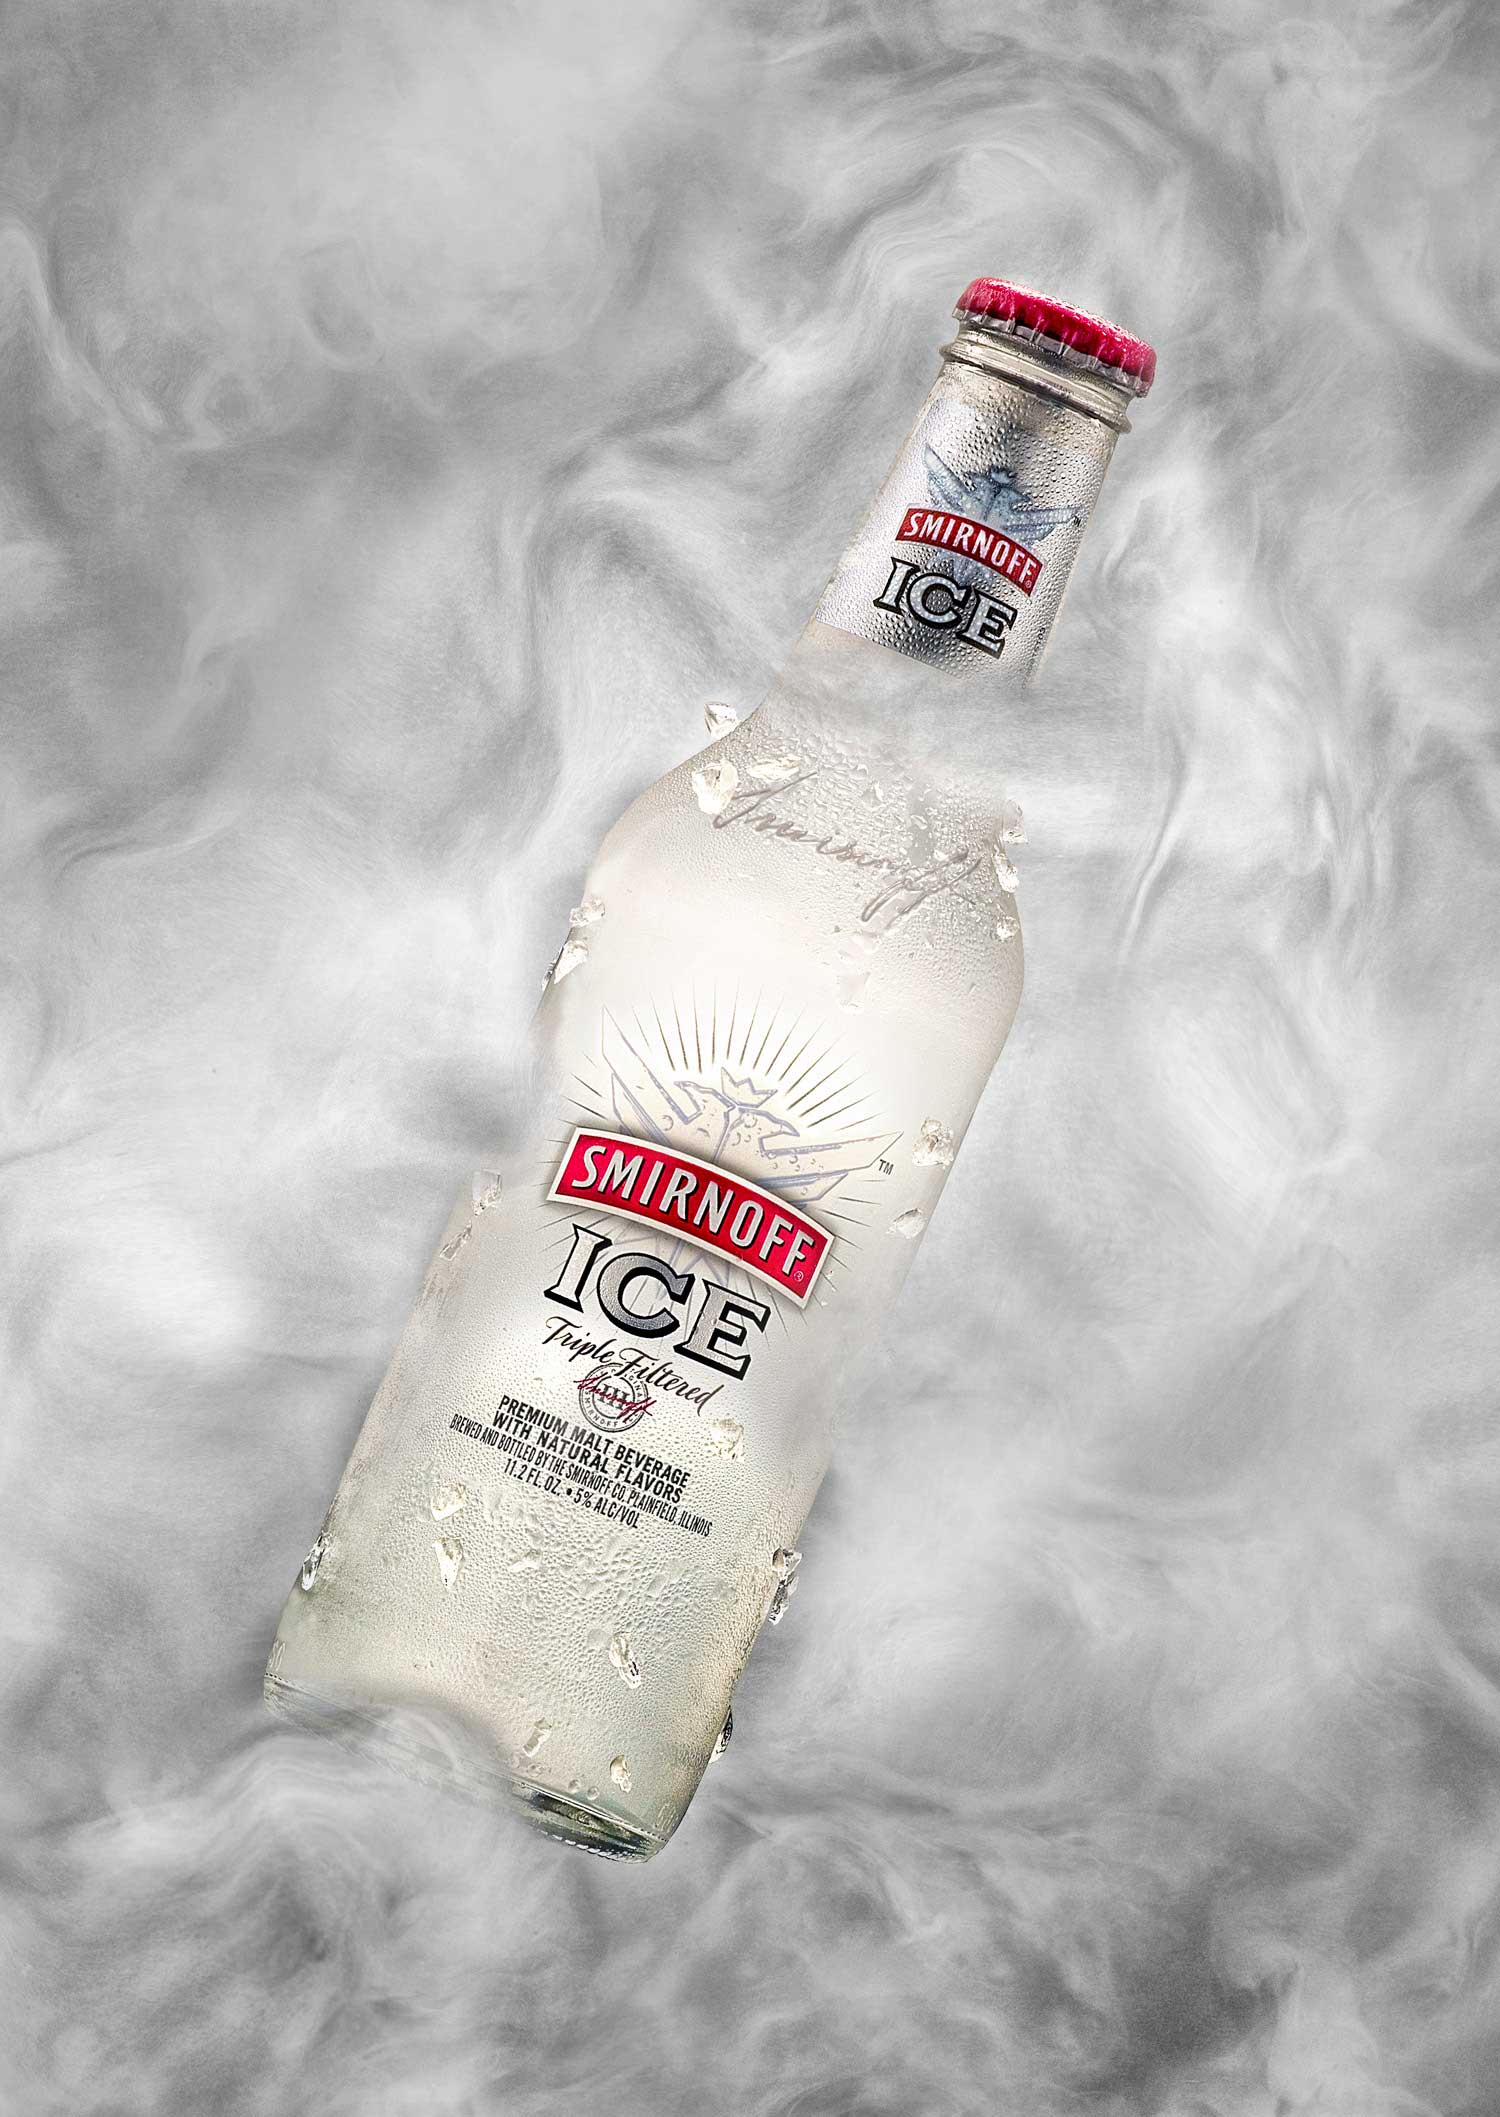 smirnoff ice bottle in smoky ice background